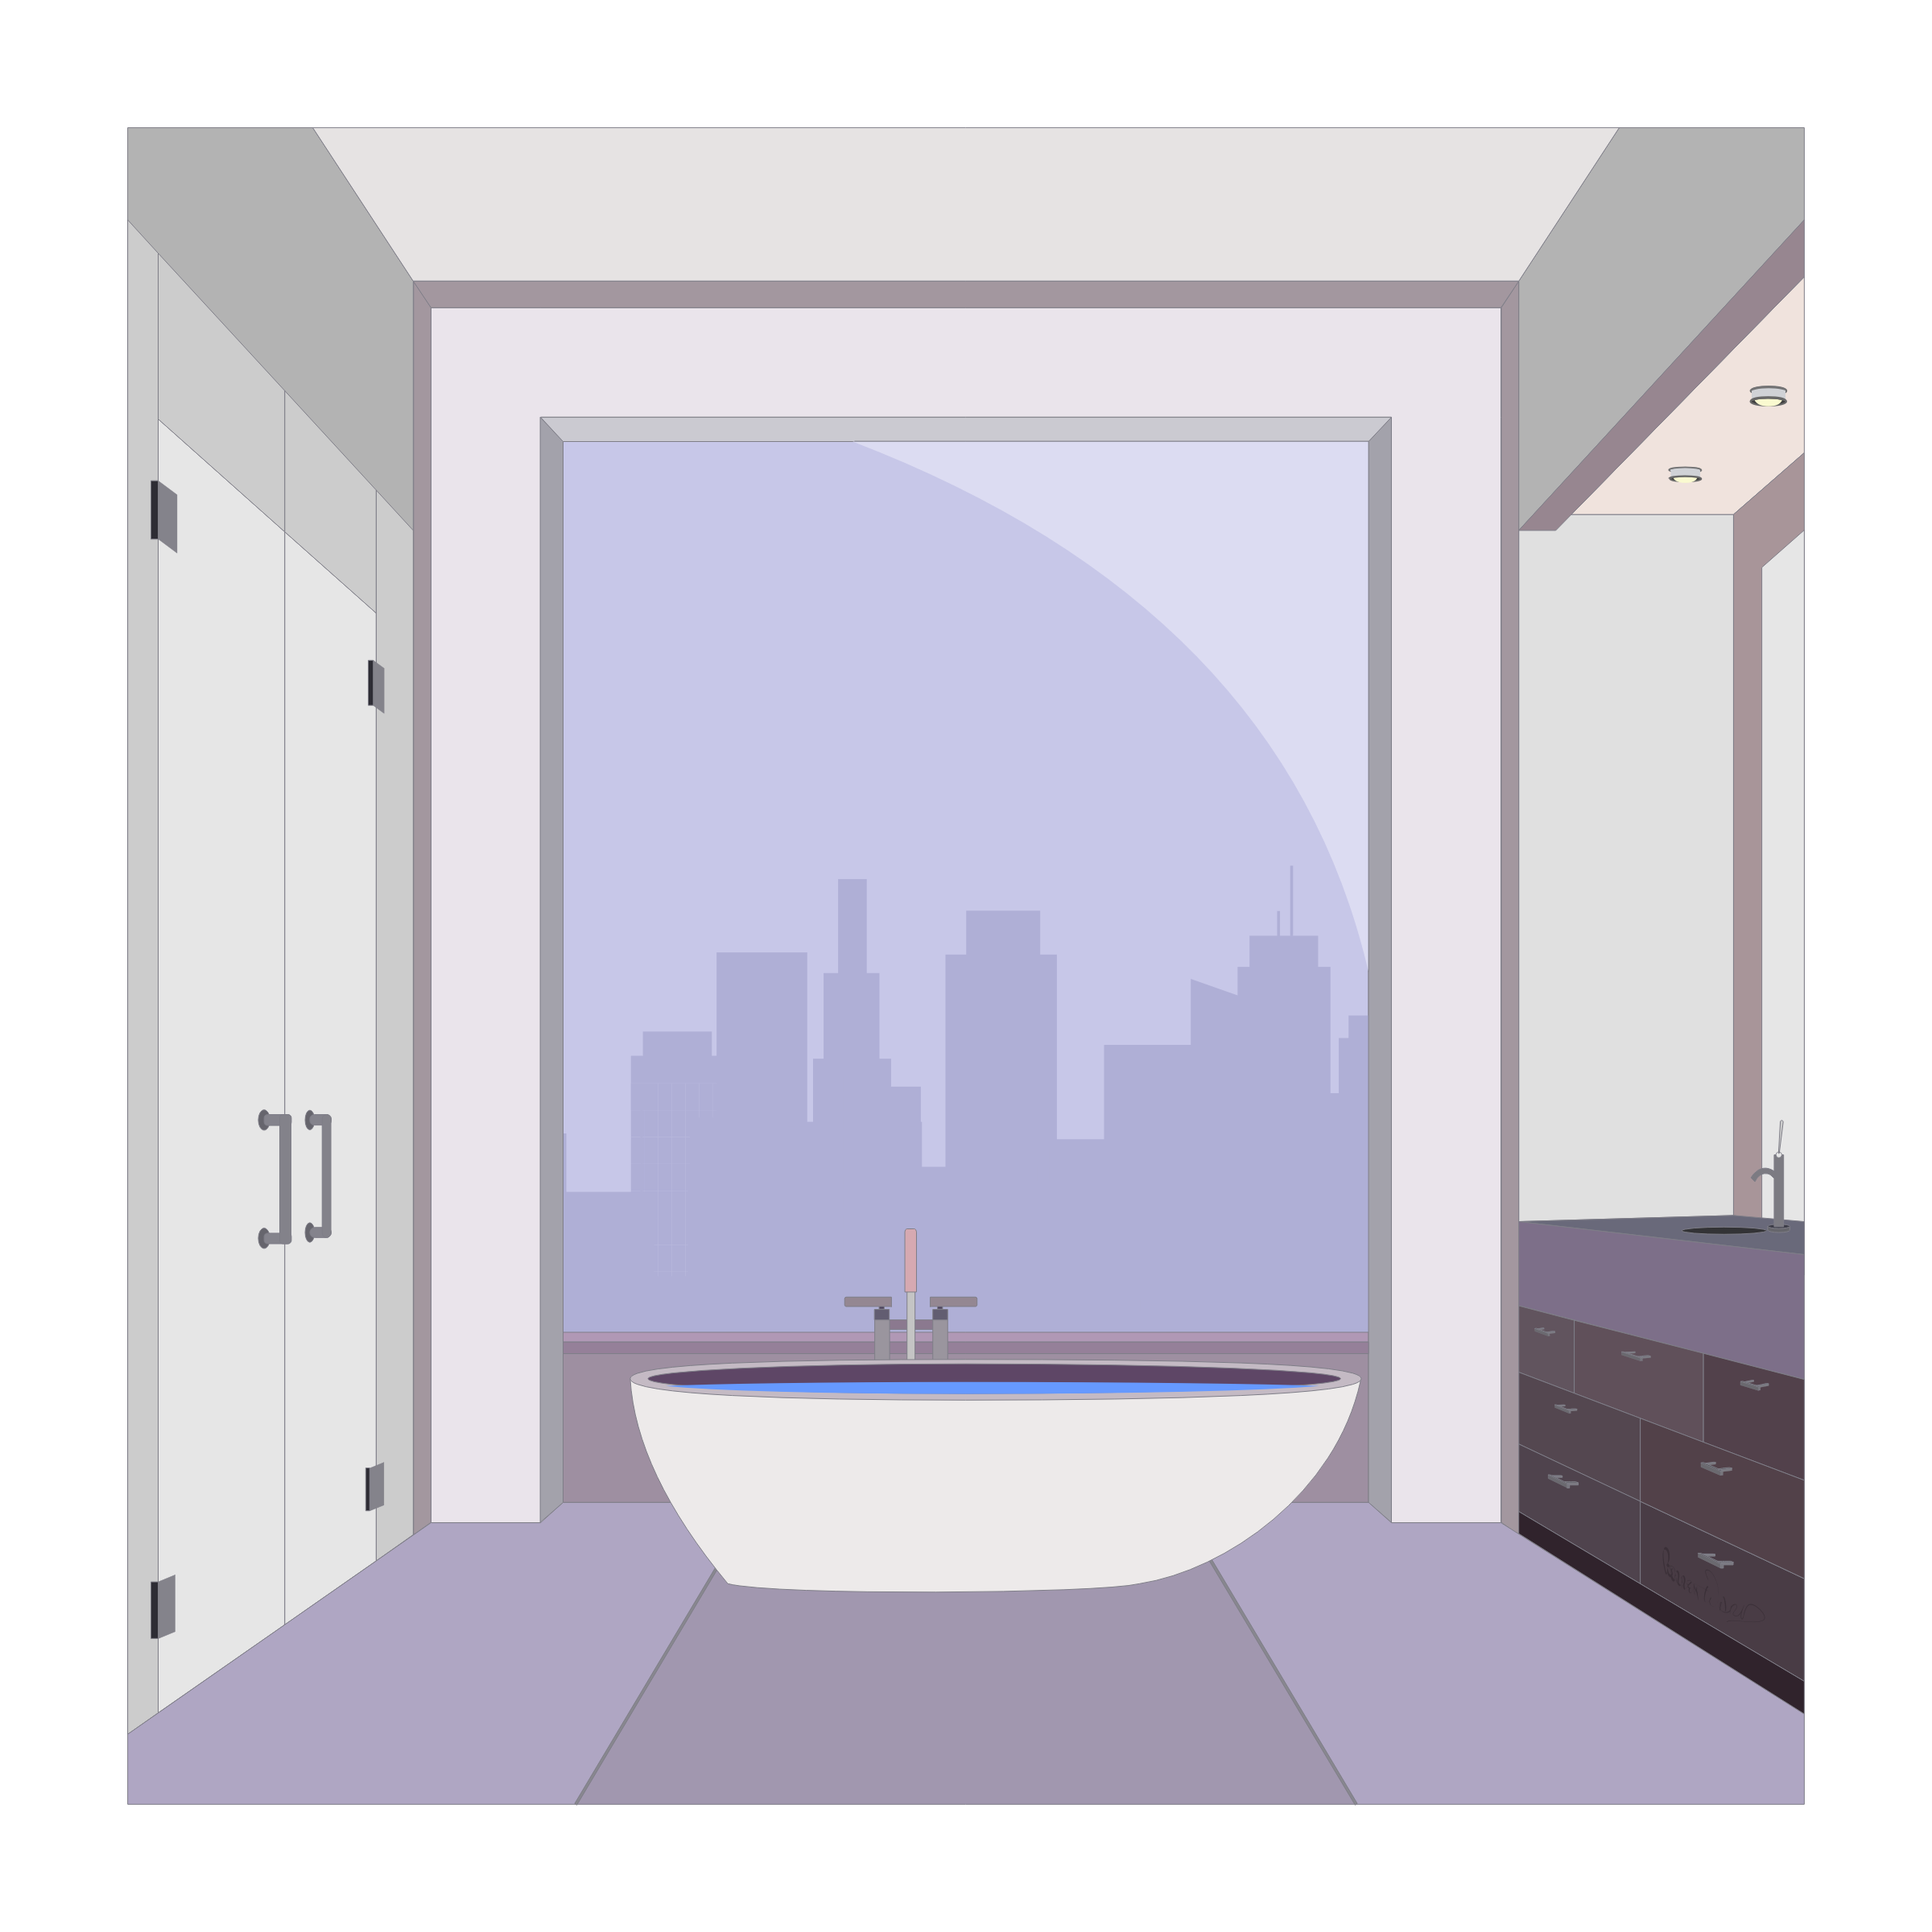 Apartment Bathroom by barrettward